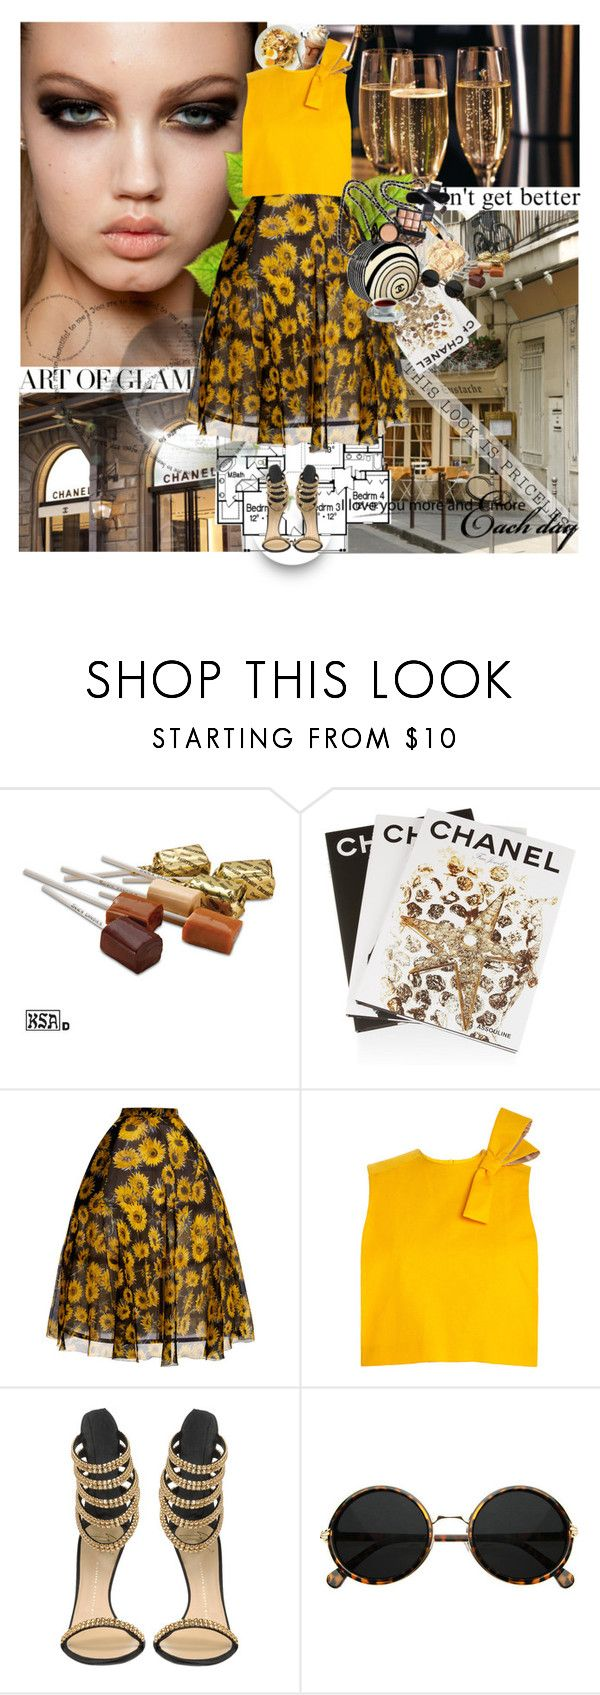 """Extravagance"" by anul1 ❤ liked on Polyvore featuring MAC Cosmetics, Assouline Publishing, Delpozo, Giuseppe Zanotti, Chanel and It Cosmetics"